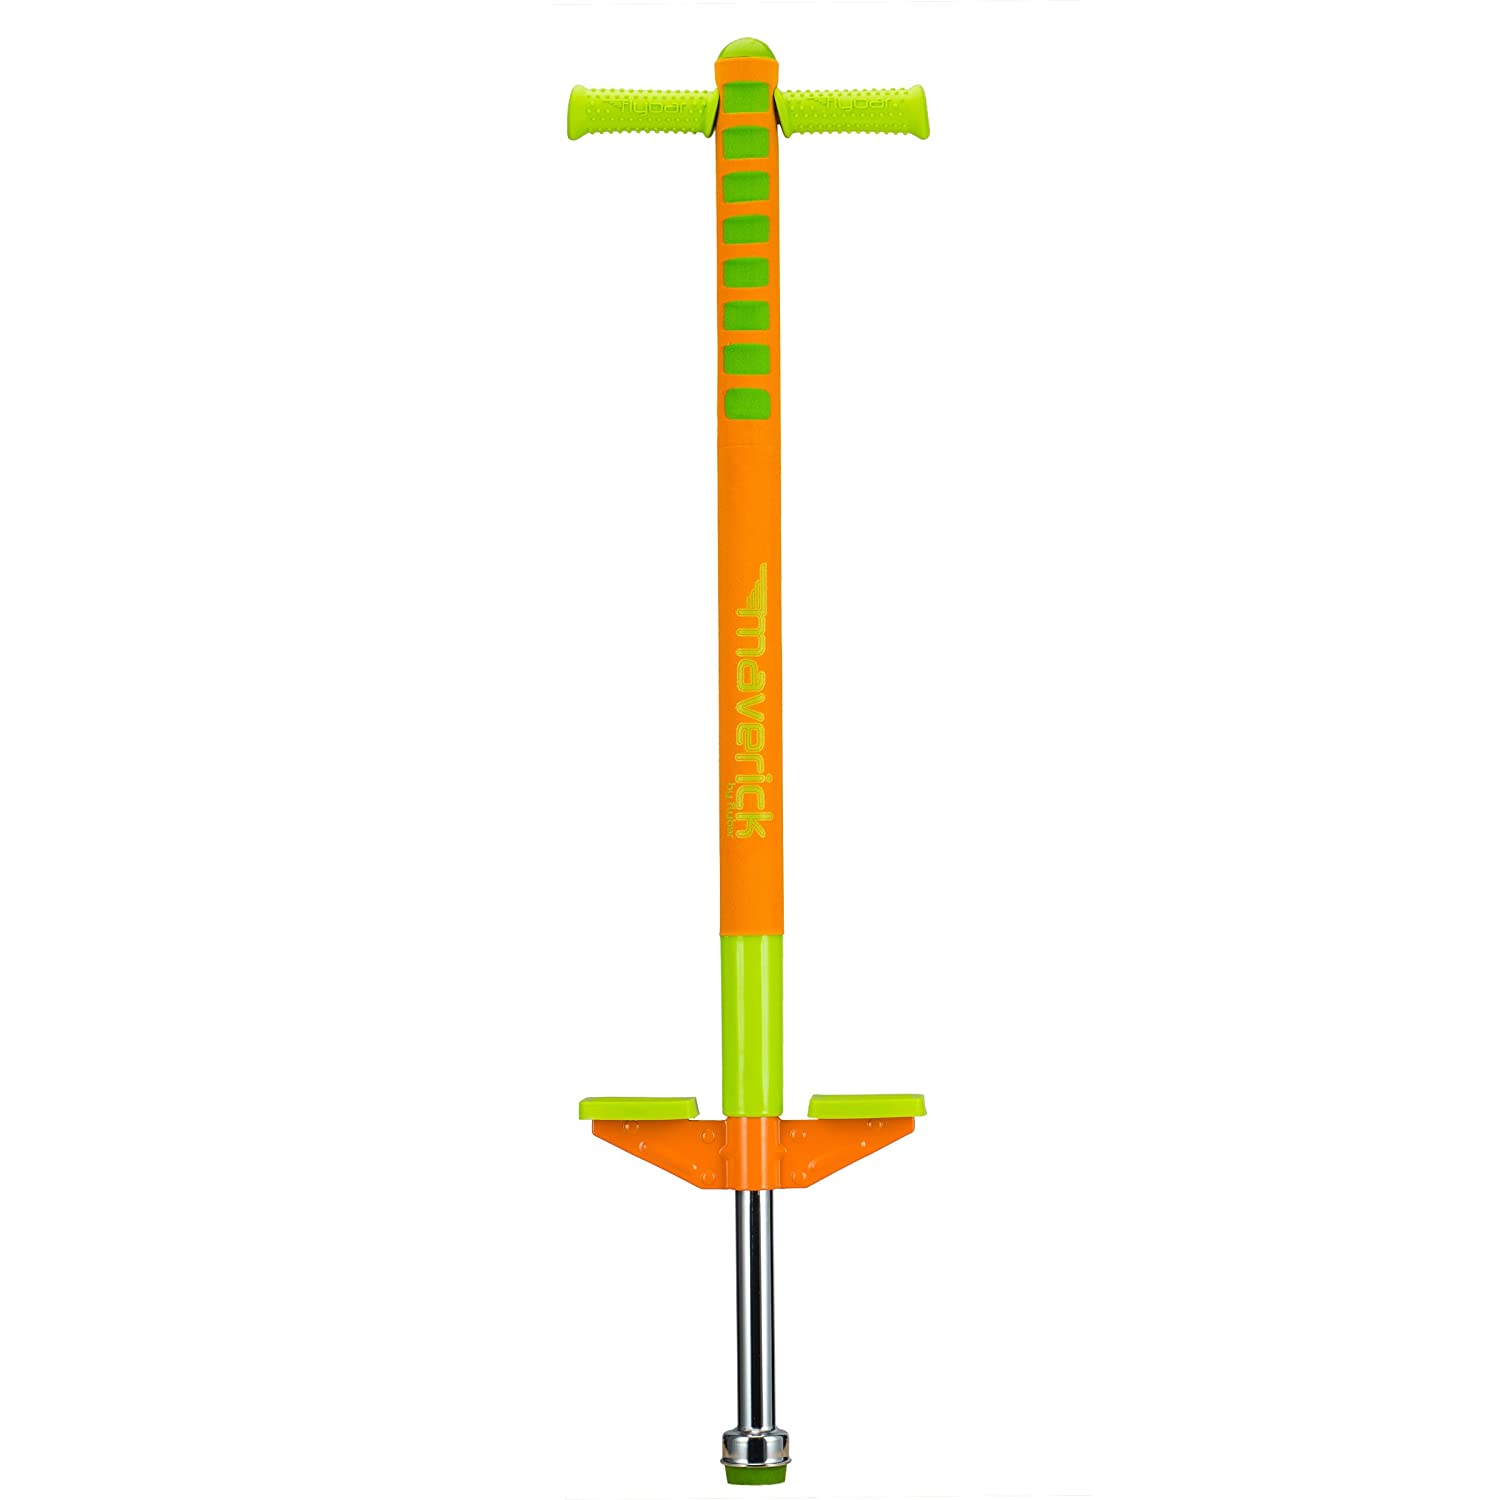 Flybar Limited Edition Foam Maverick Pogo Stick for Boys Girls Ages 5 9 Orange Lime Comes With New 'Rubber' Grip Handles.